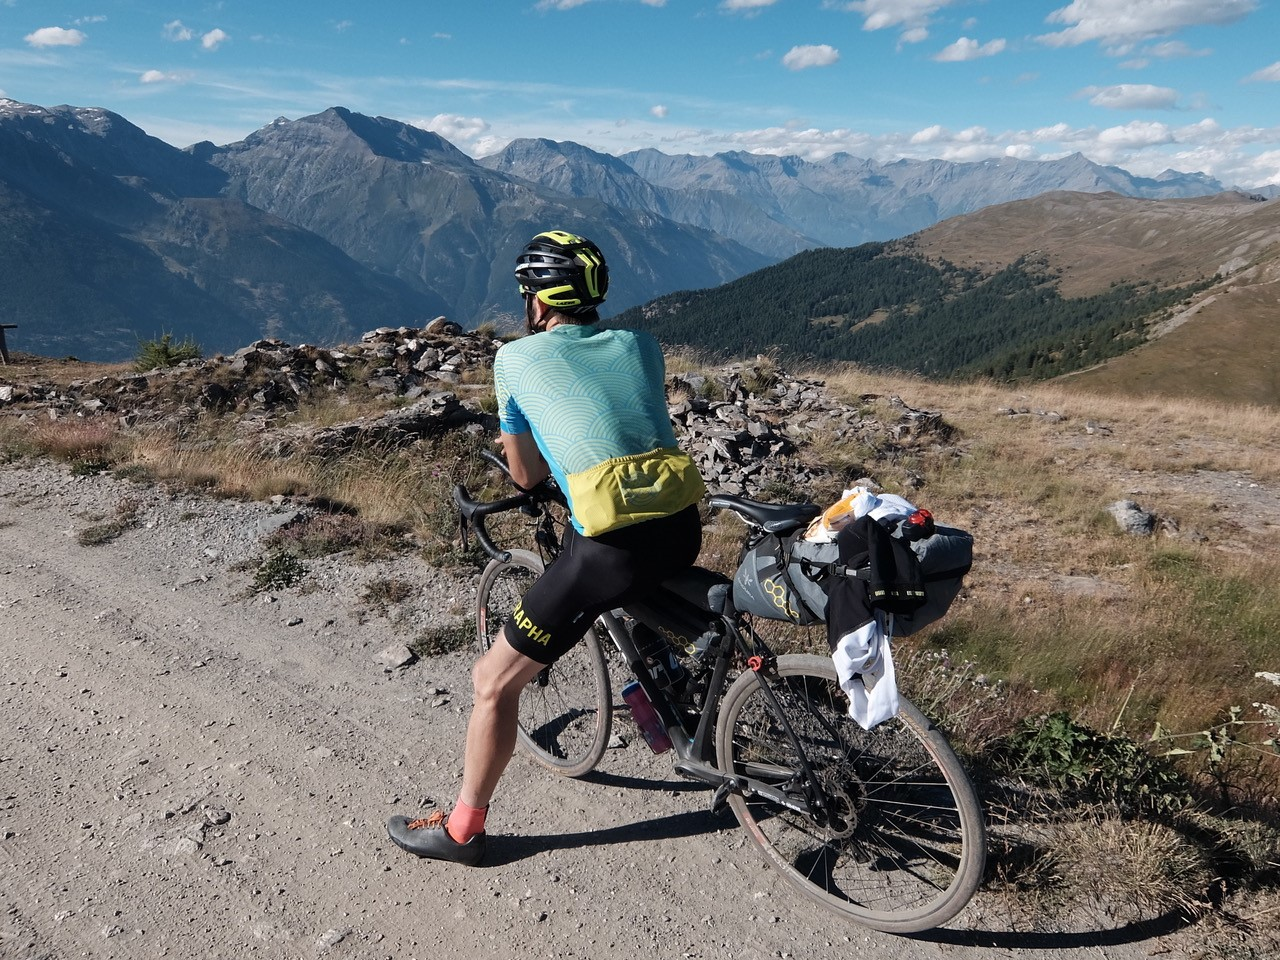 Neil Phillips' 5 tips for an epic gravel adventure